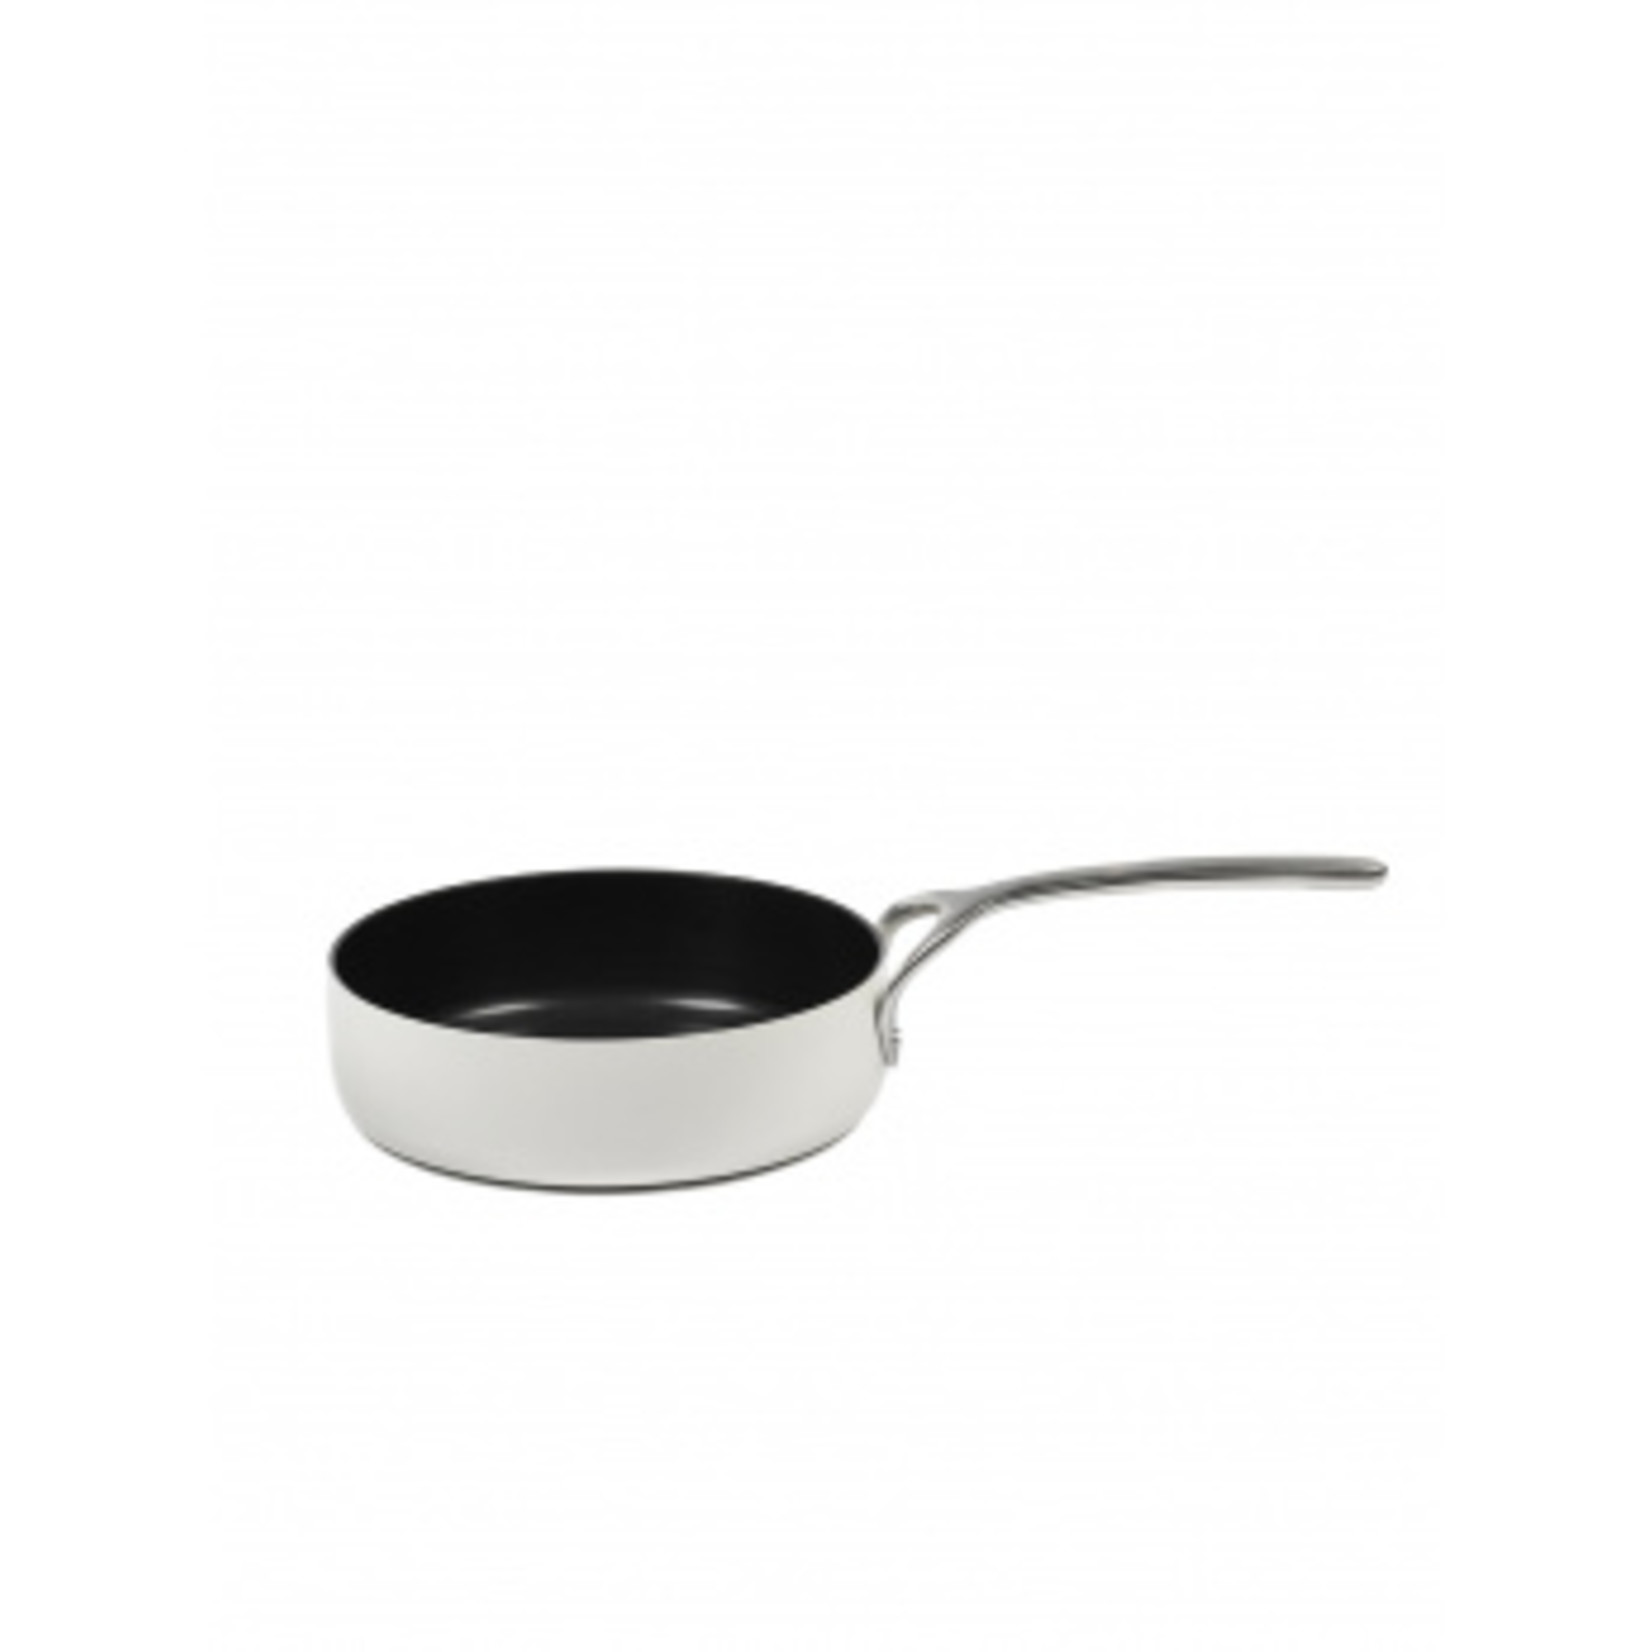 Pascale Naessens collection Pure Anti-kleef braadpan Aluminium 3,1 l